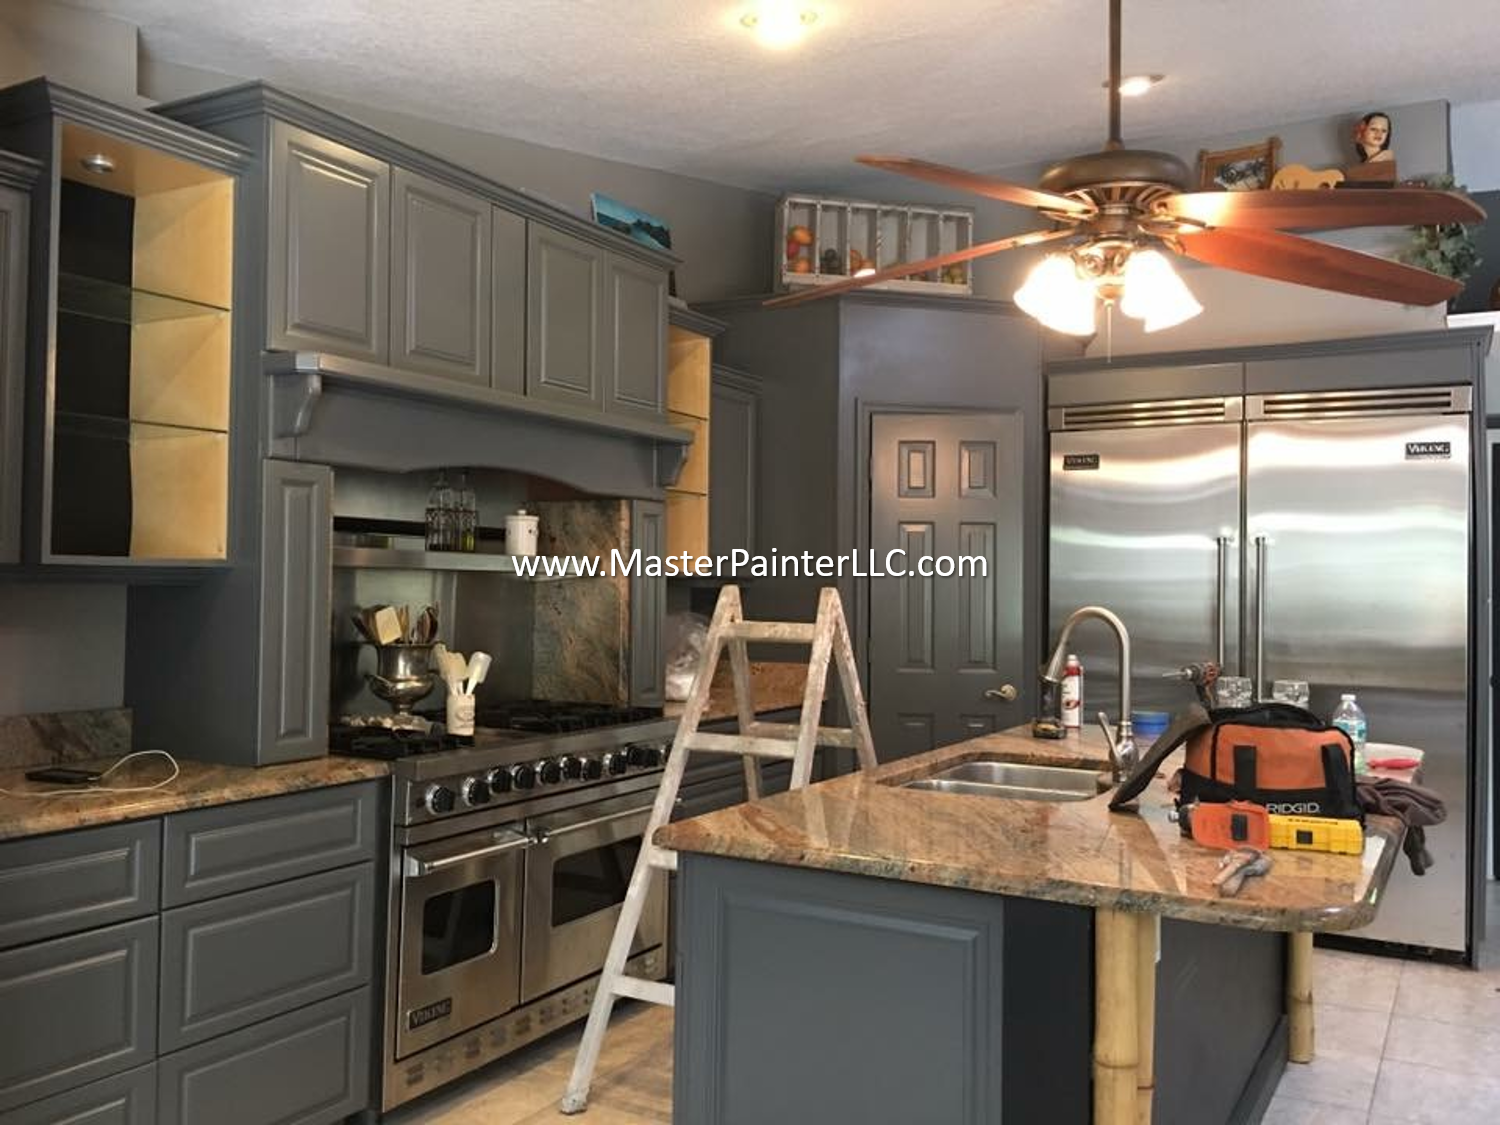 Kitchen cabinets sprayed gray